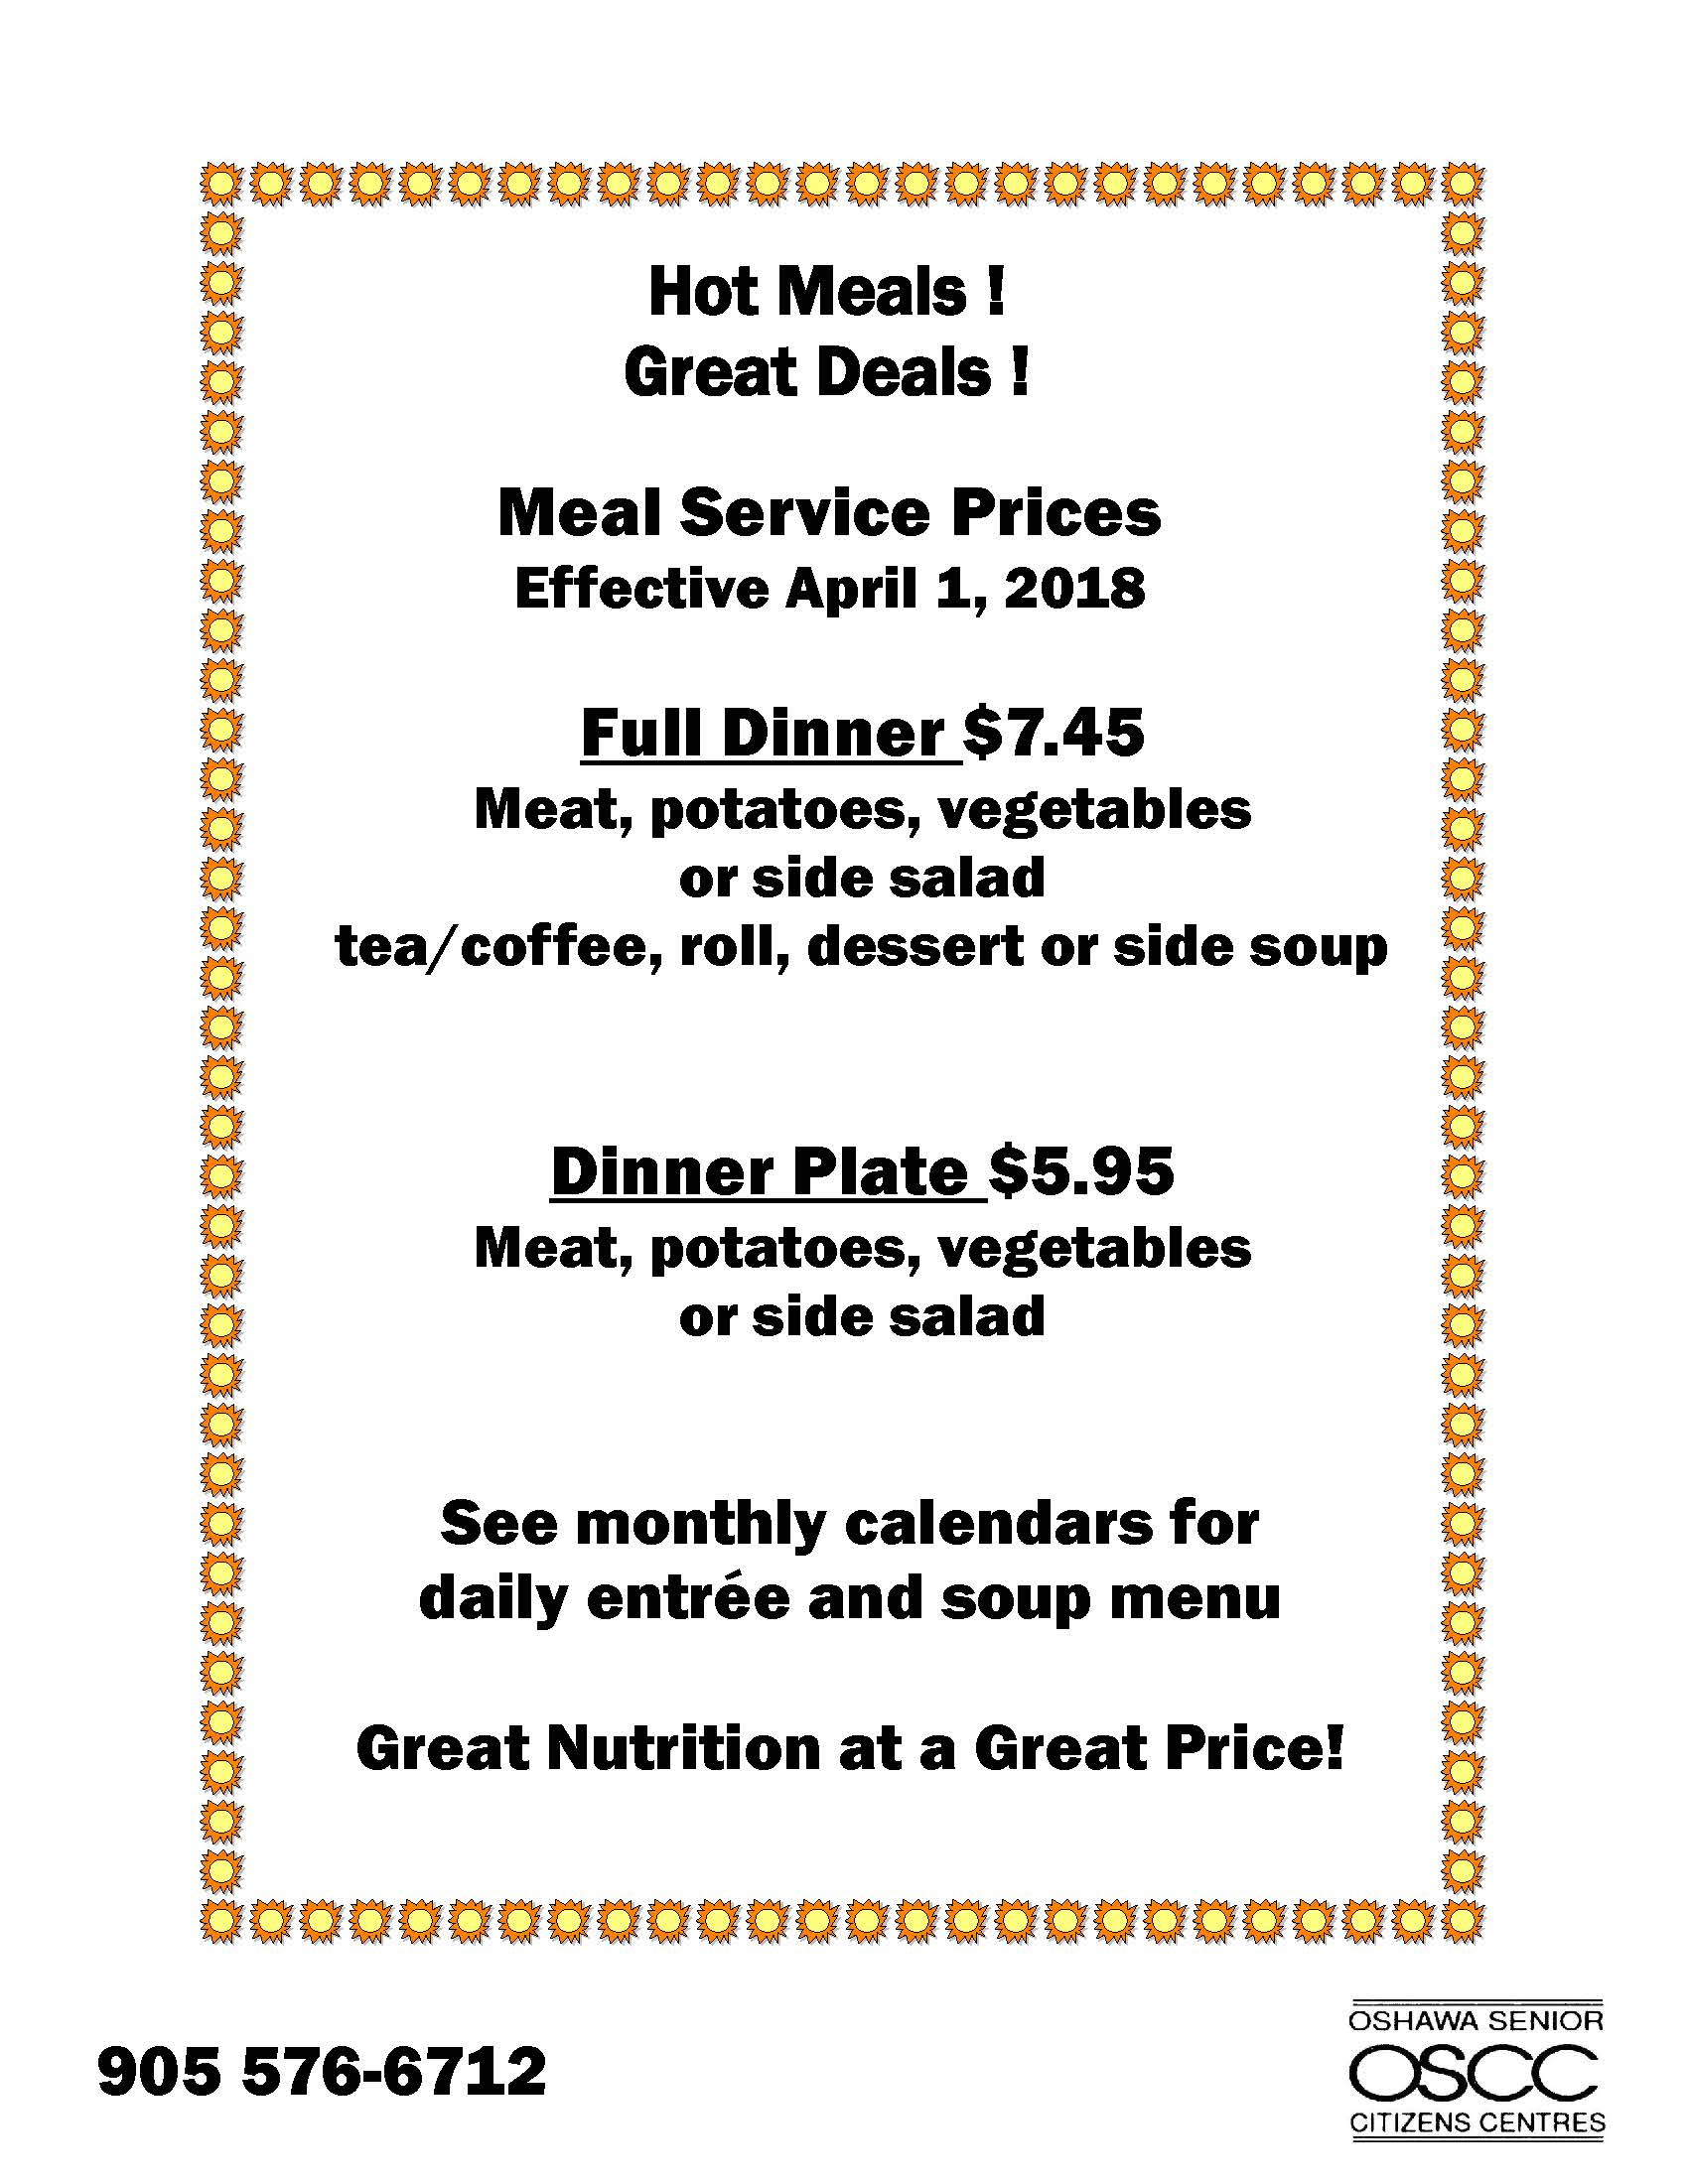 Meal Services summary of increases